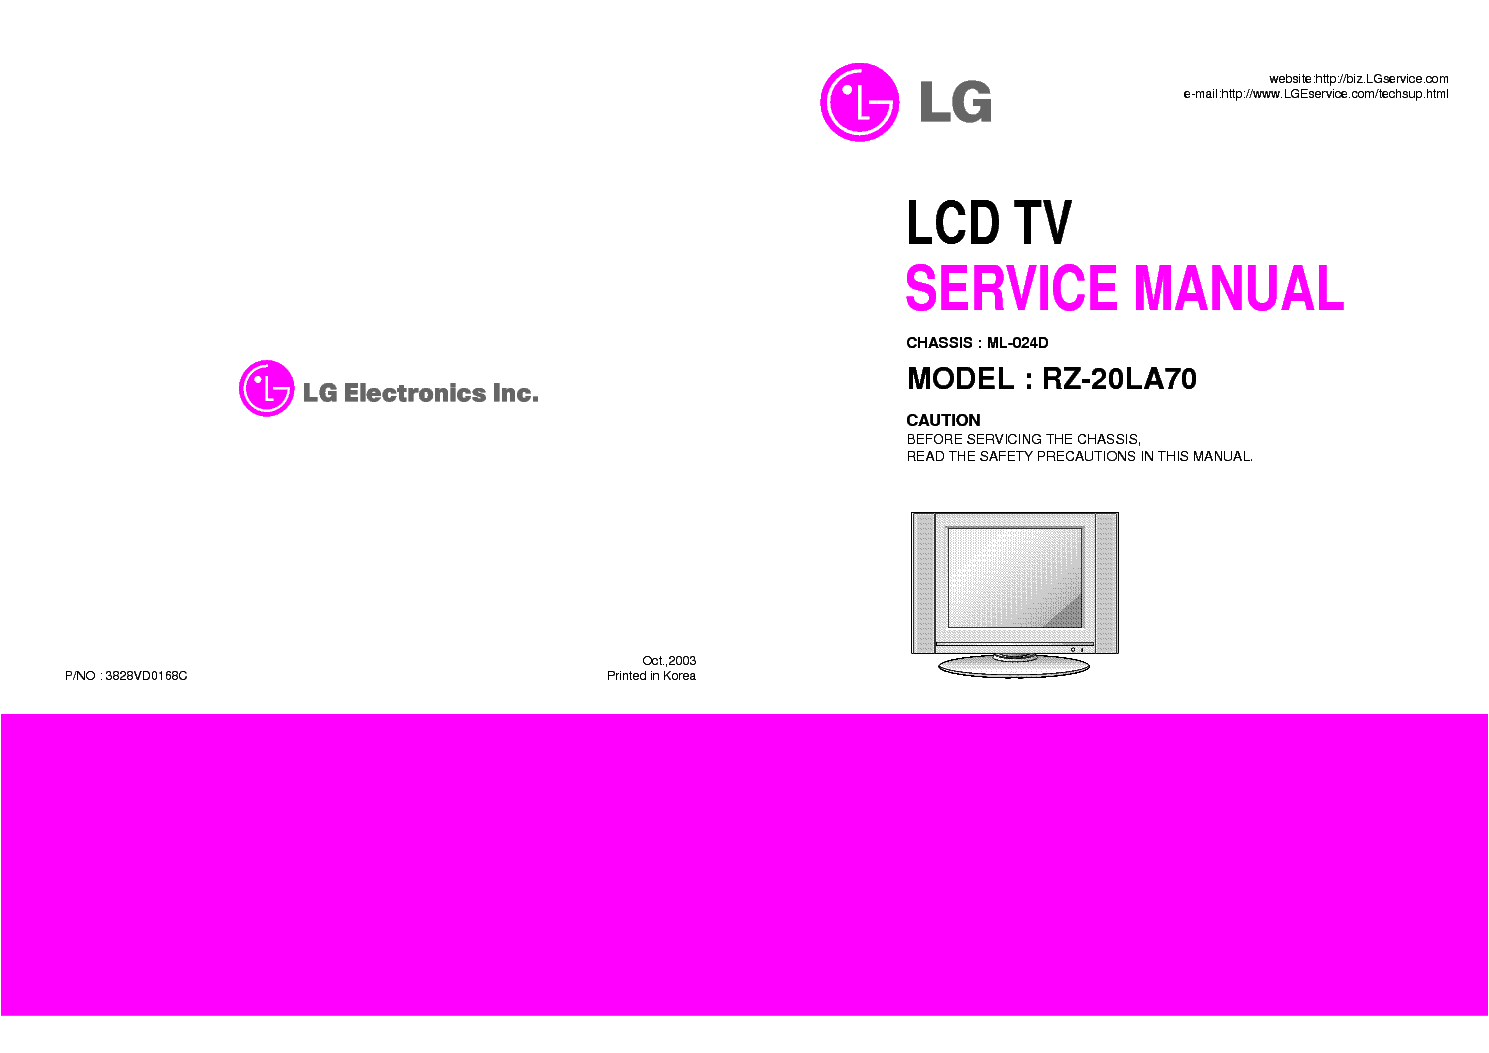 LG RZ-20LA70 CHASSIS ML-024D service manual